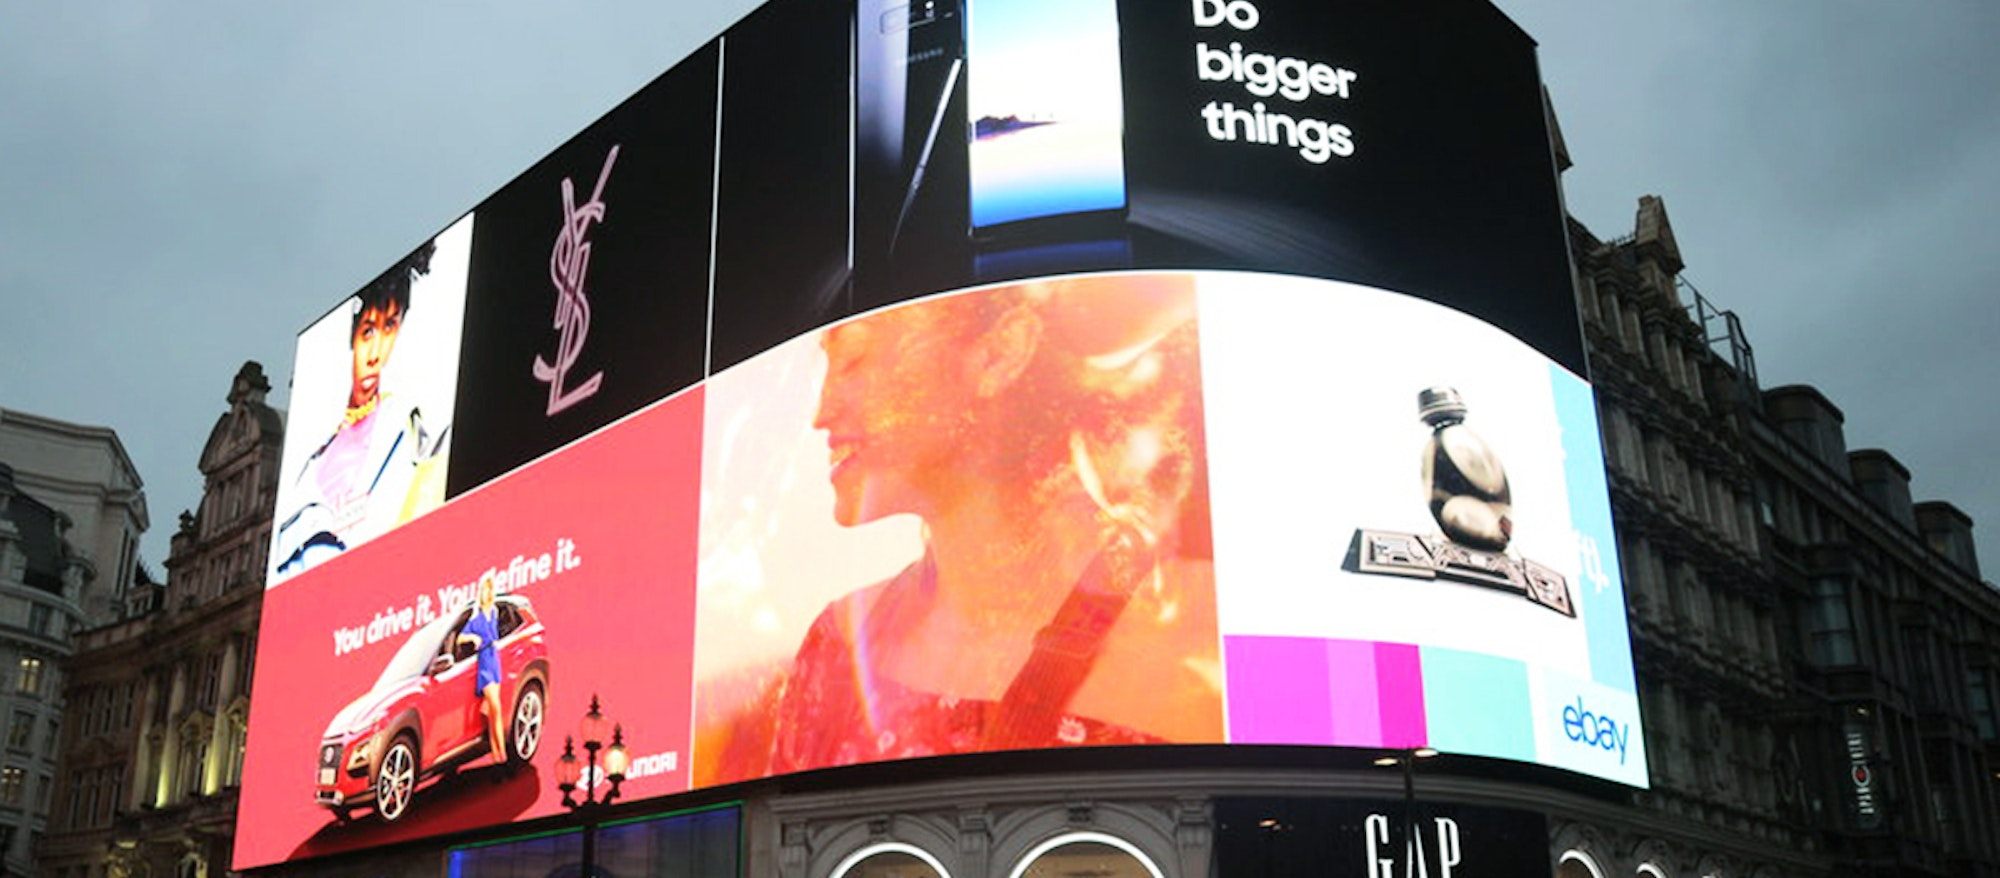 Is Digital Out-of-Home Advertising Right for Your Brand?